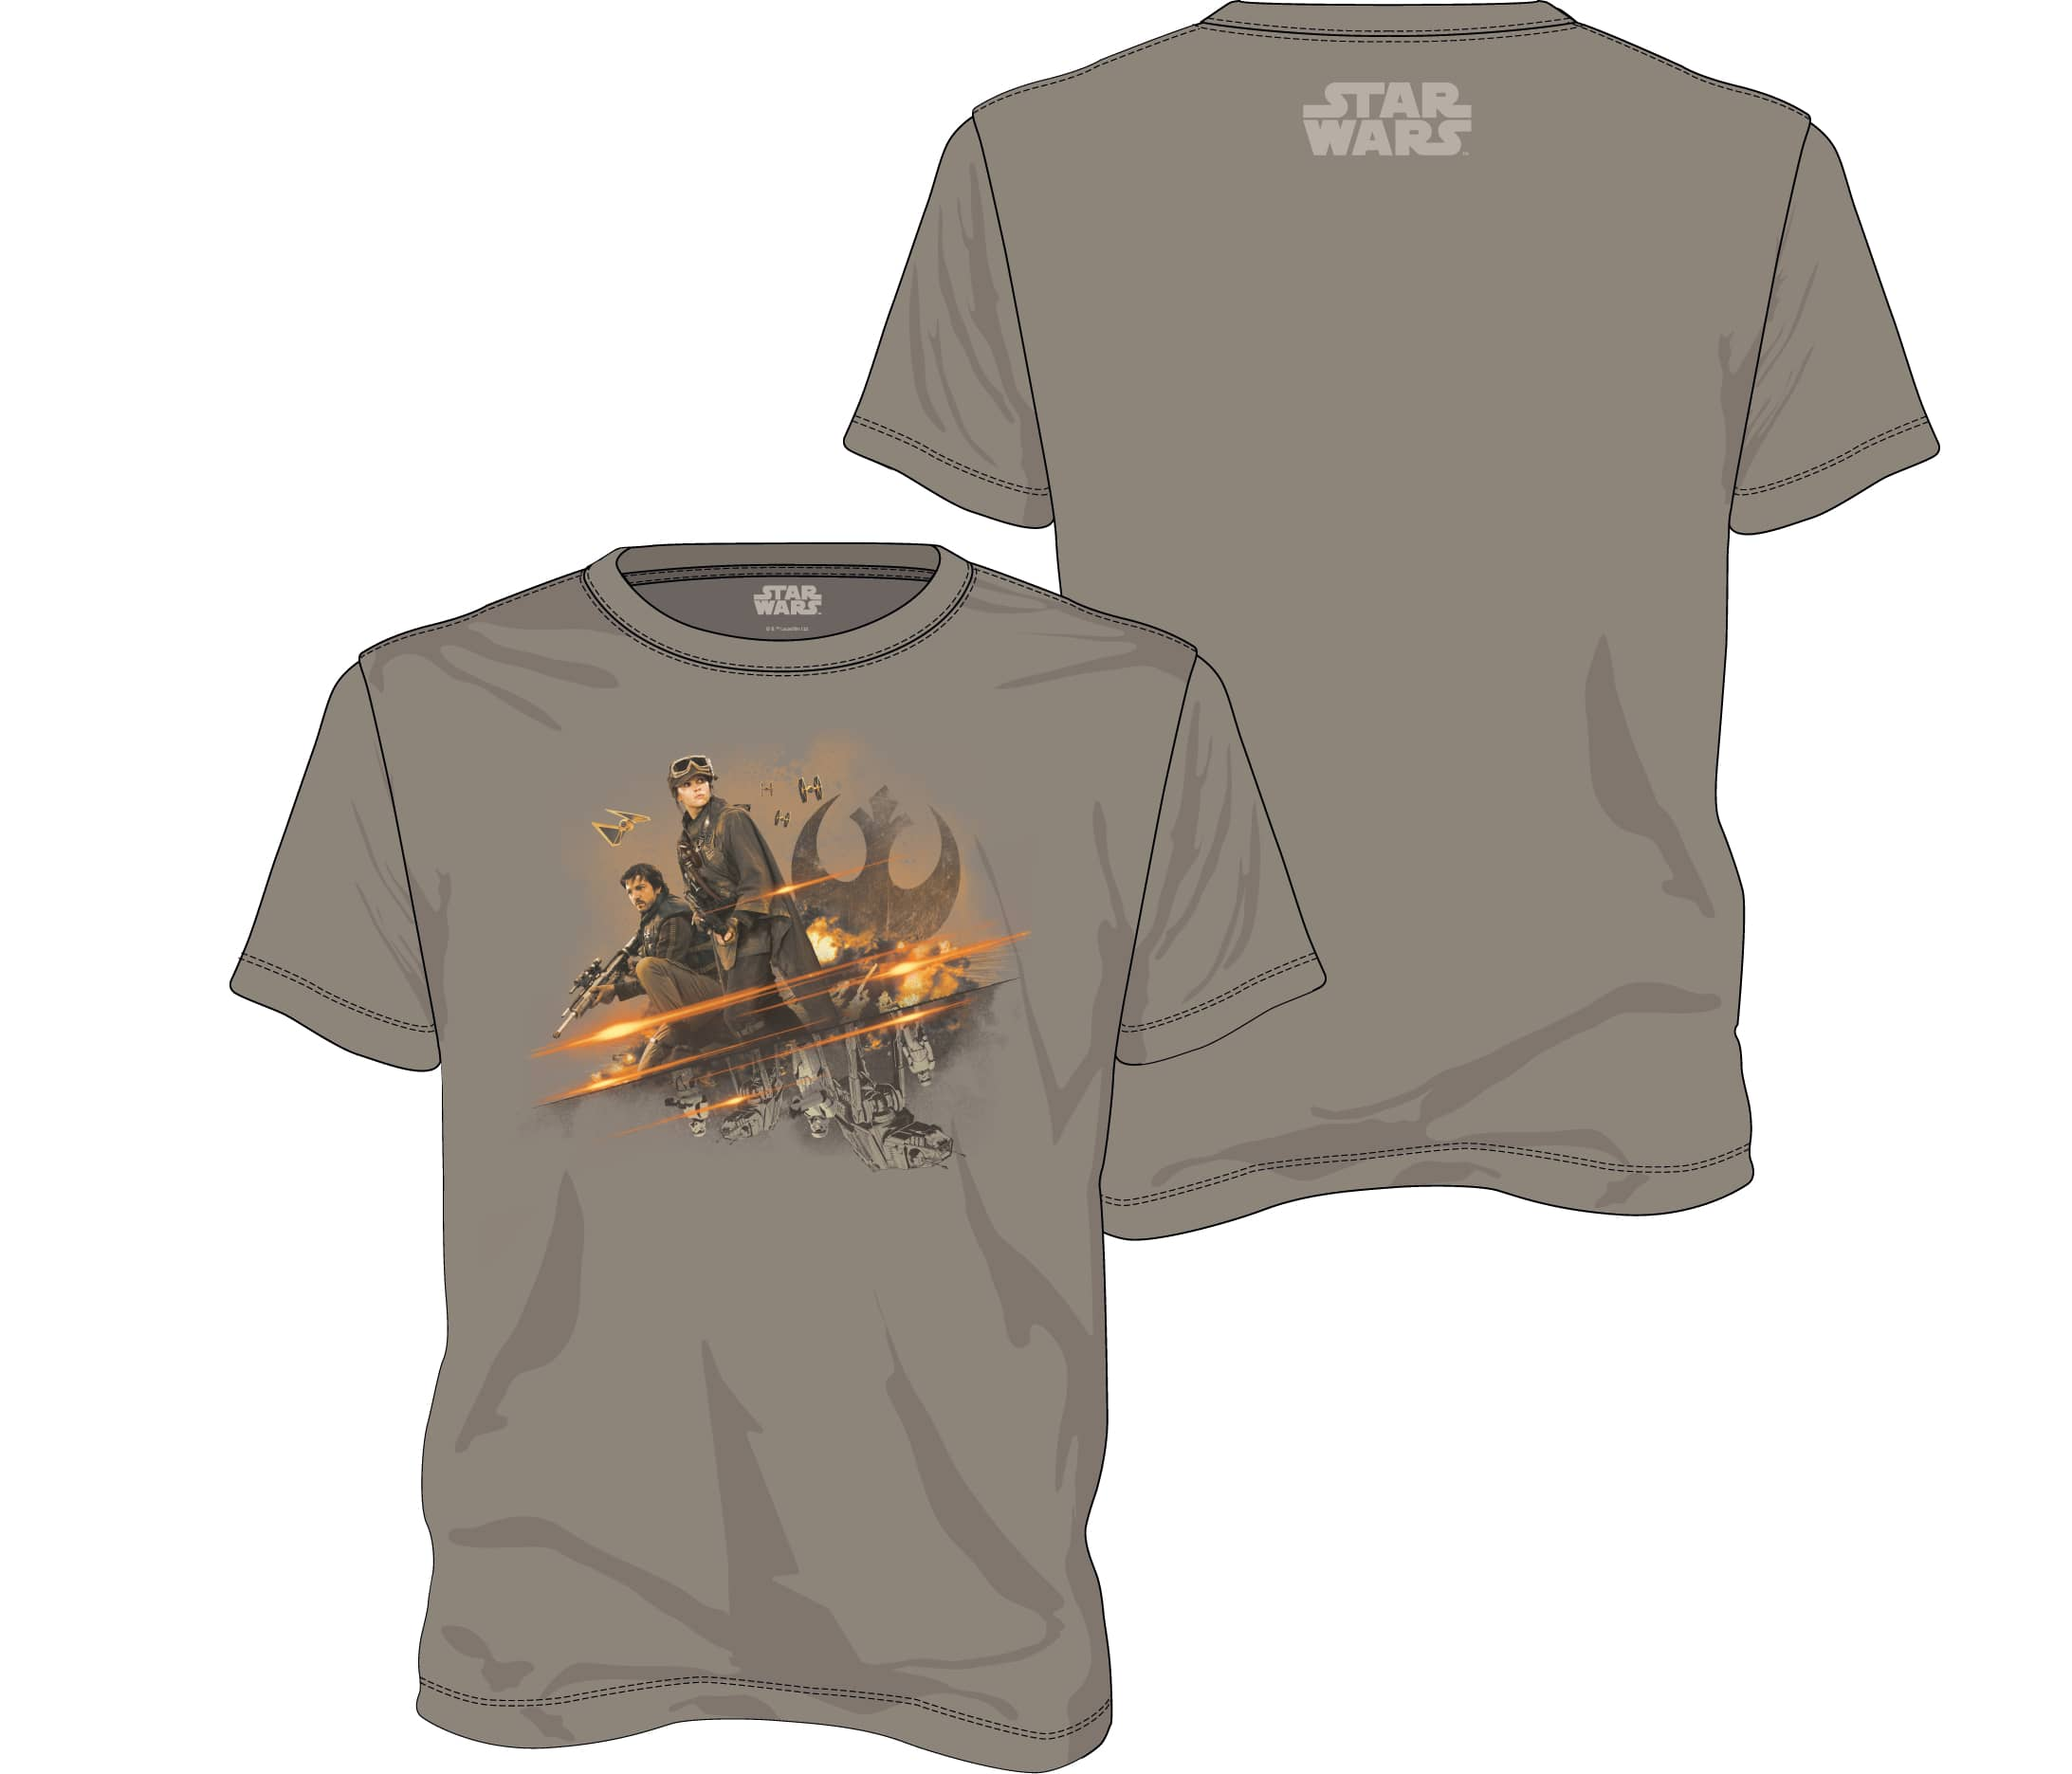 GRUPO REBELDE CAMISETA GRIS CHICO T-XXL STAR WARS ROGUE ONE